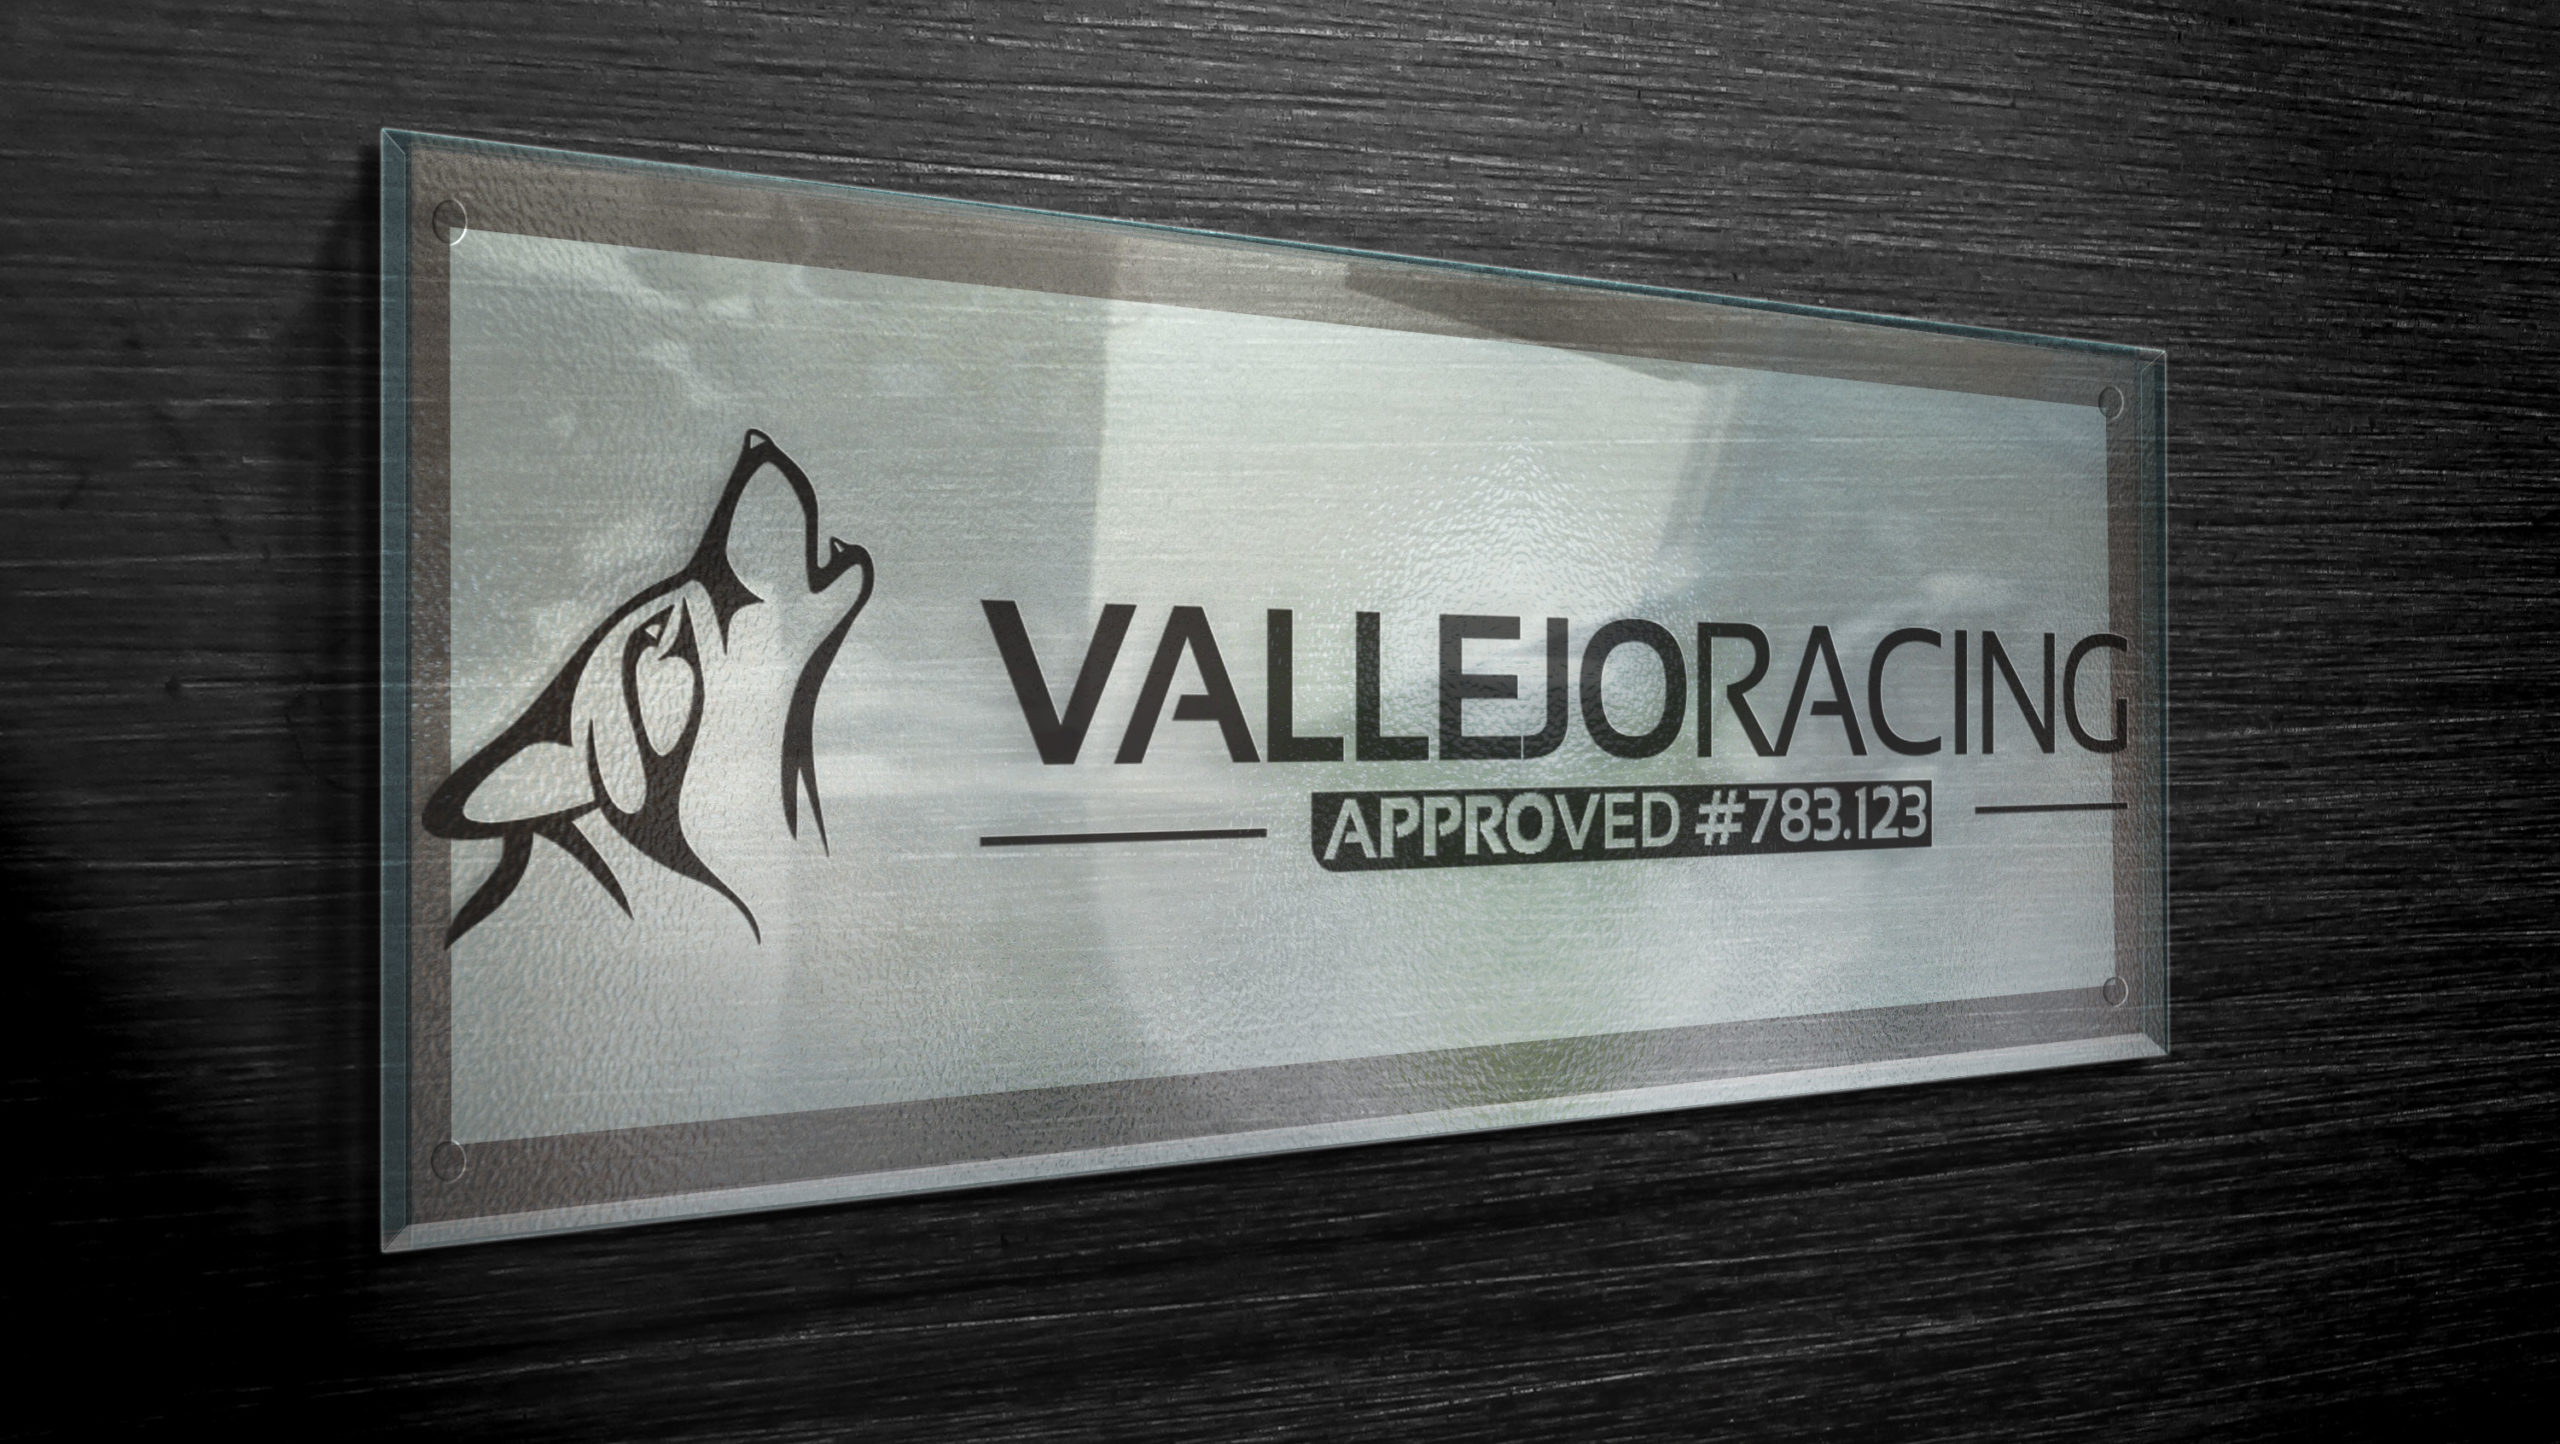 Vallejo Racing Approved